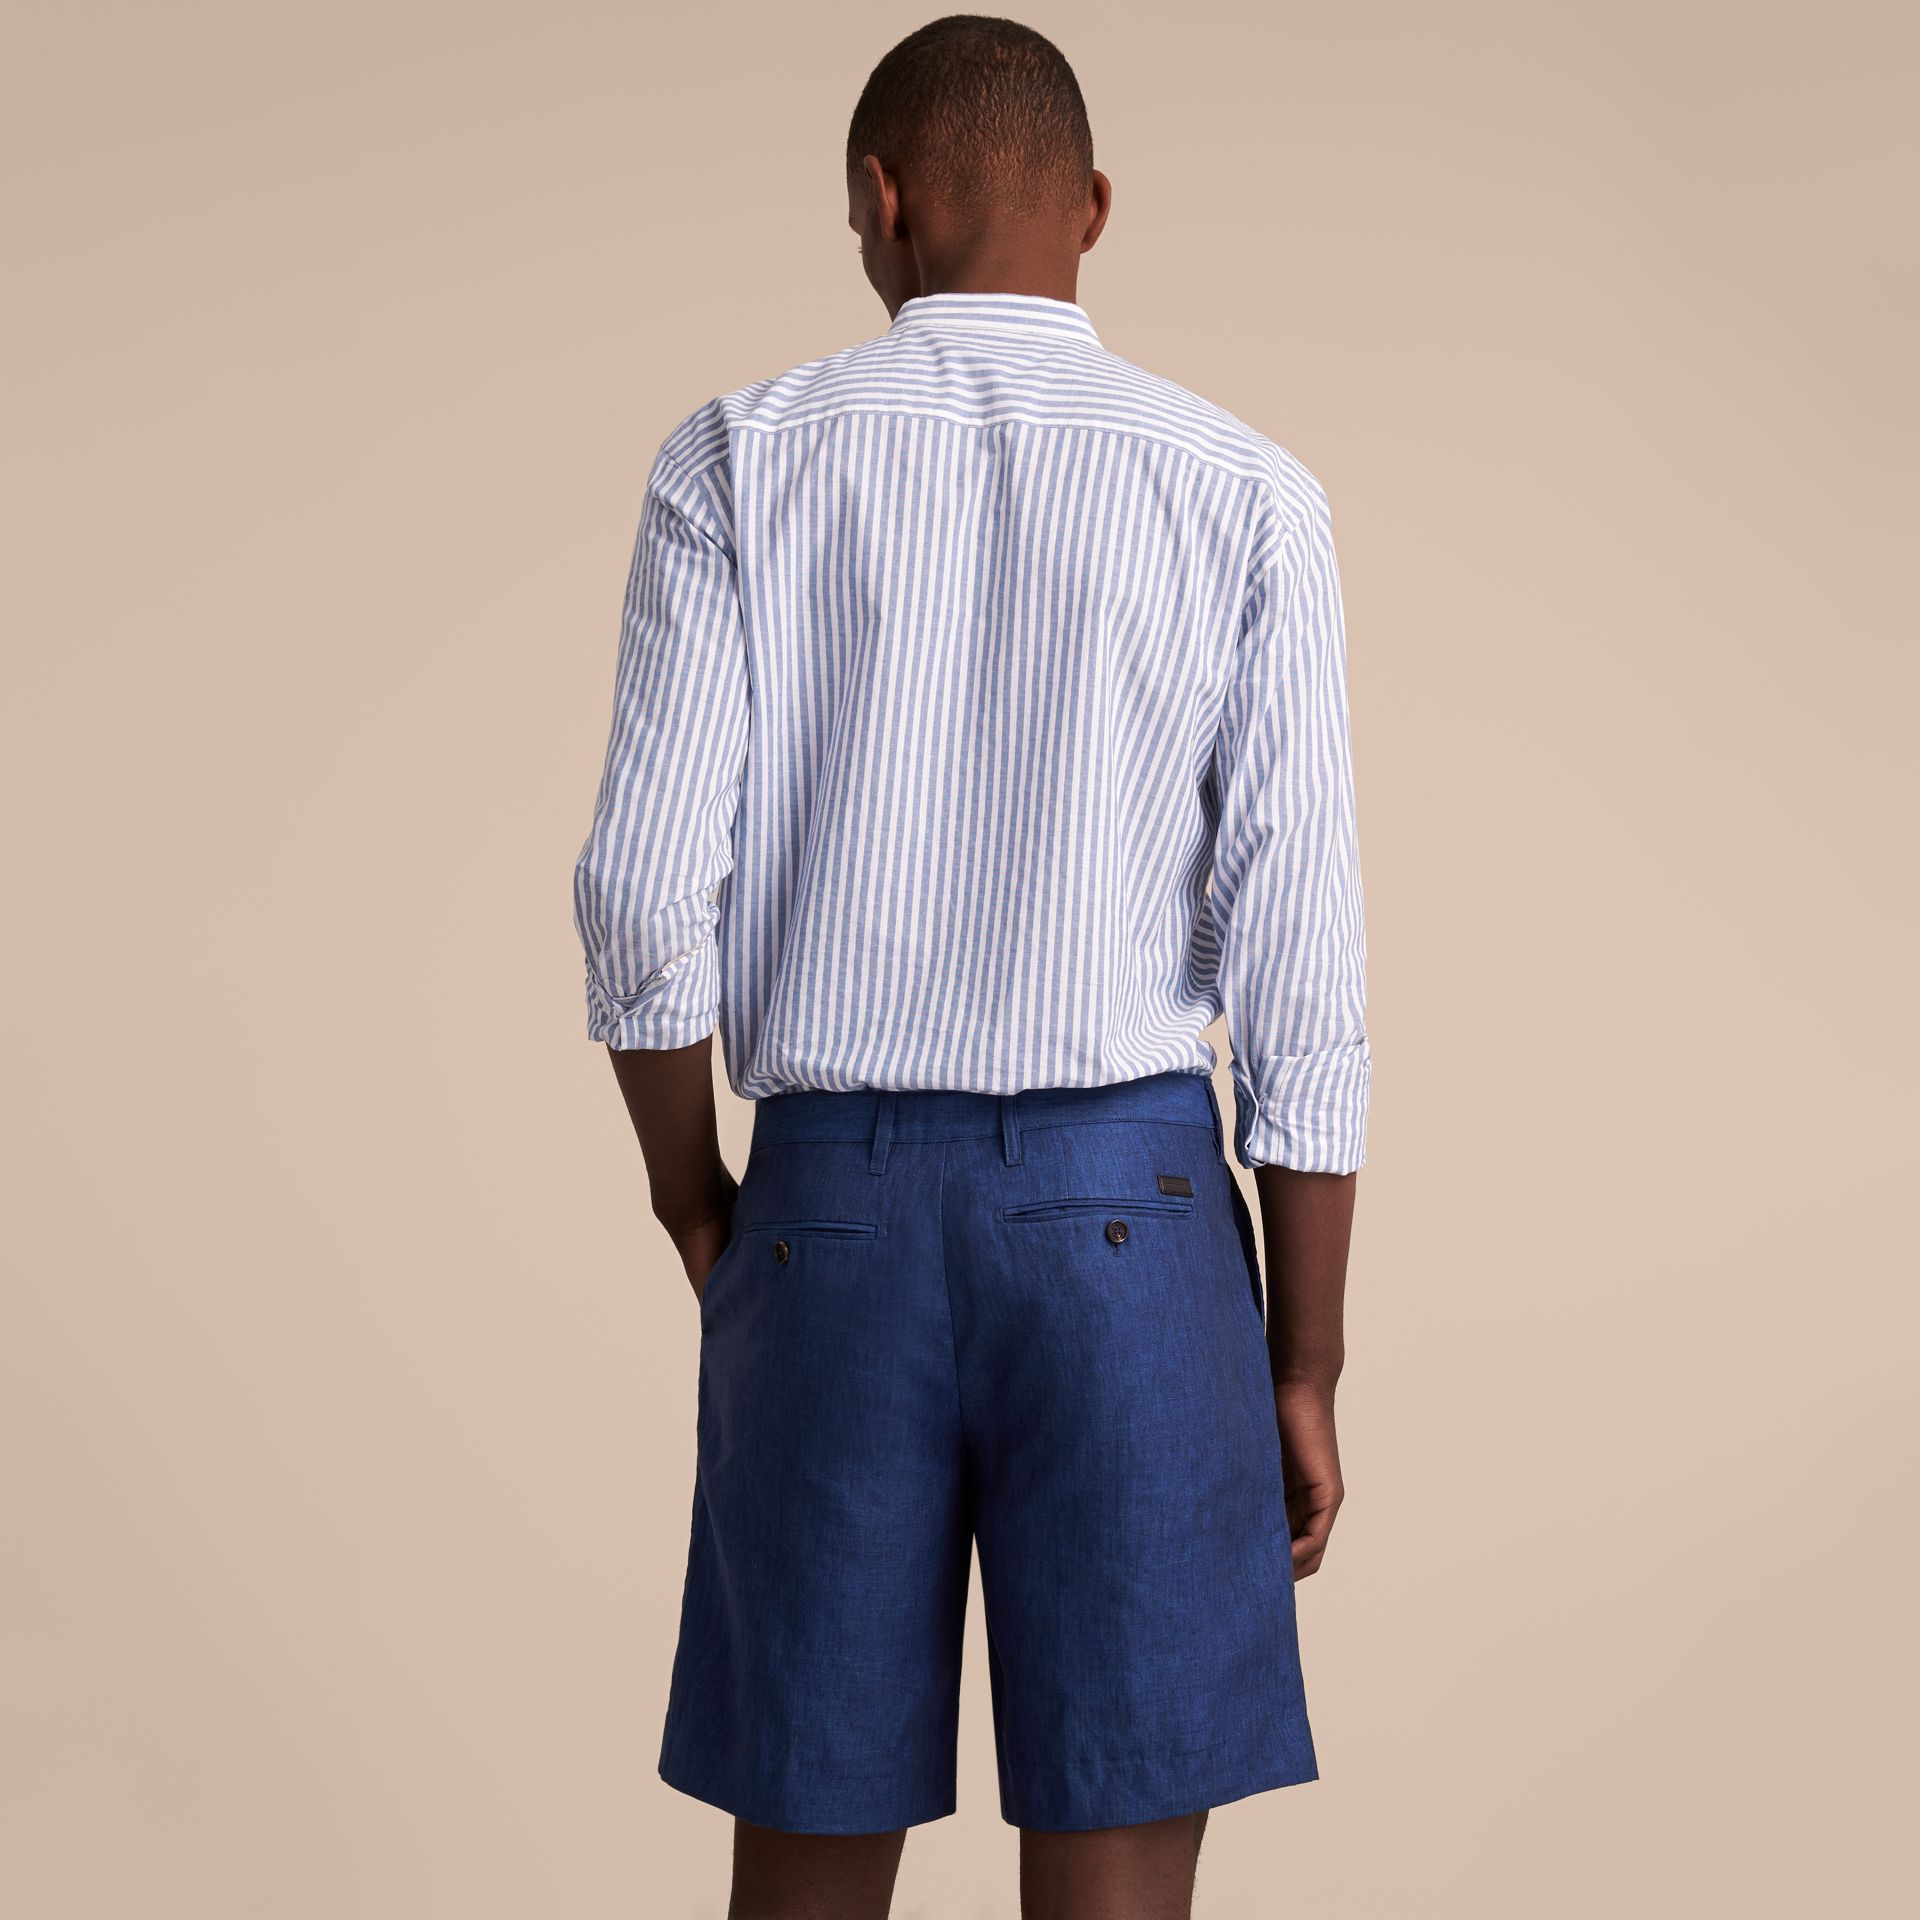 Lightweight Linen Shorts in Steel Blue - Men | Burberry - gallery image 3